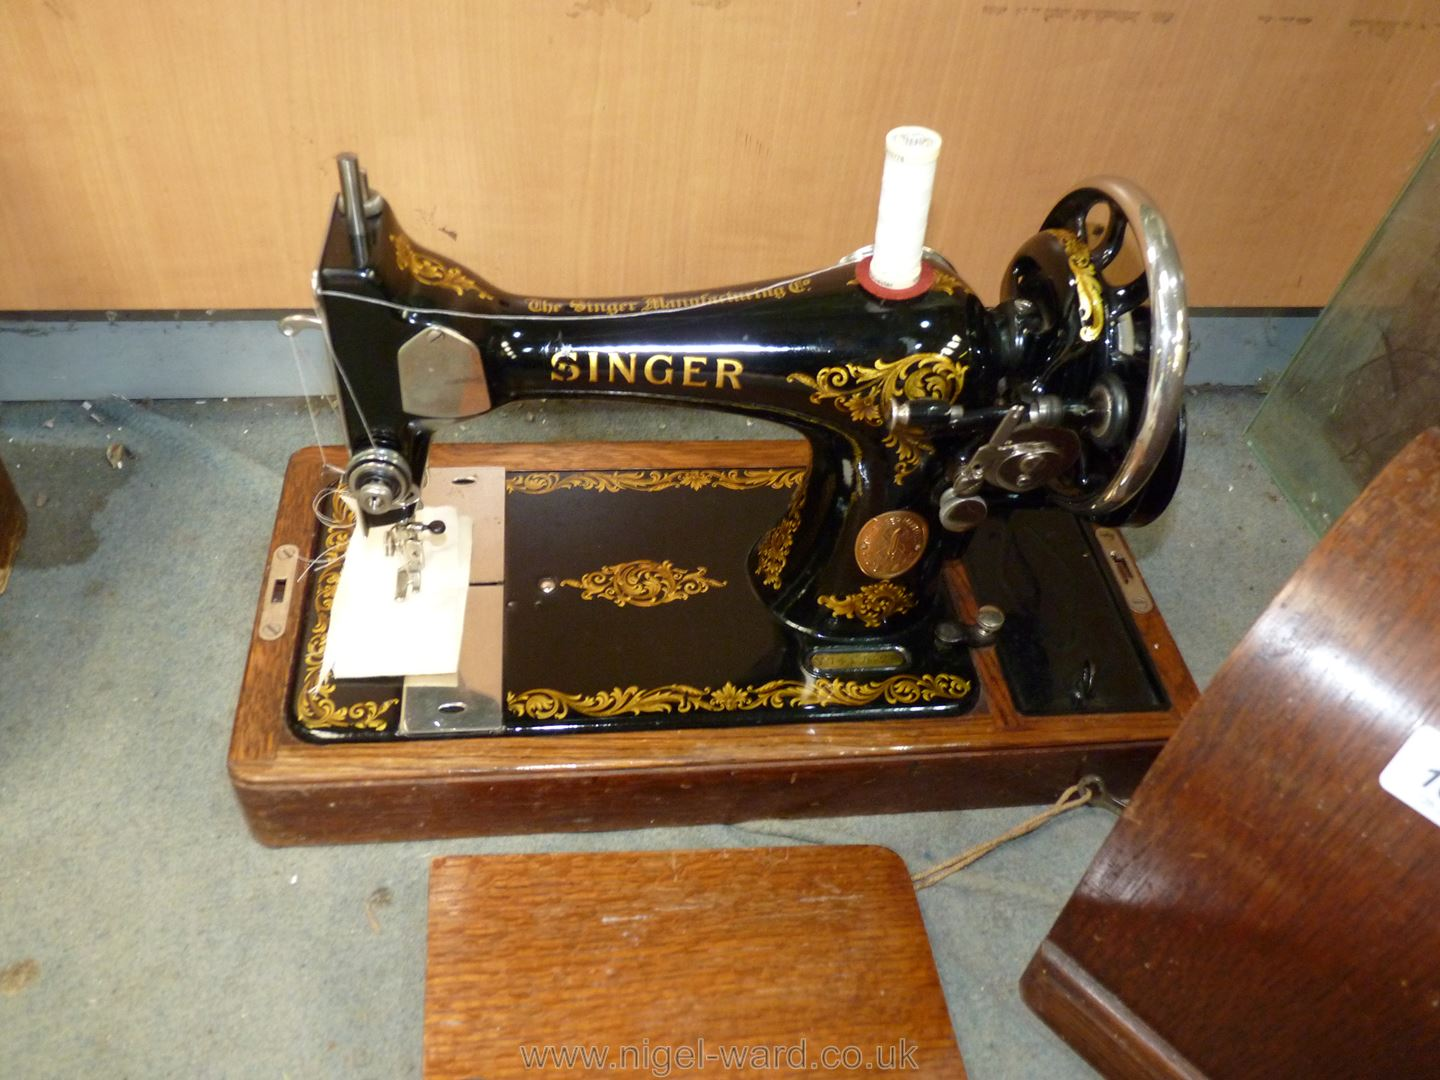 A Singer sewing machine in wooden case with key